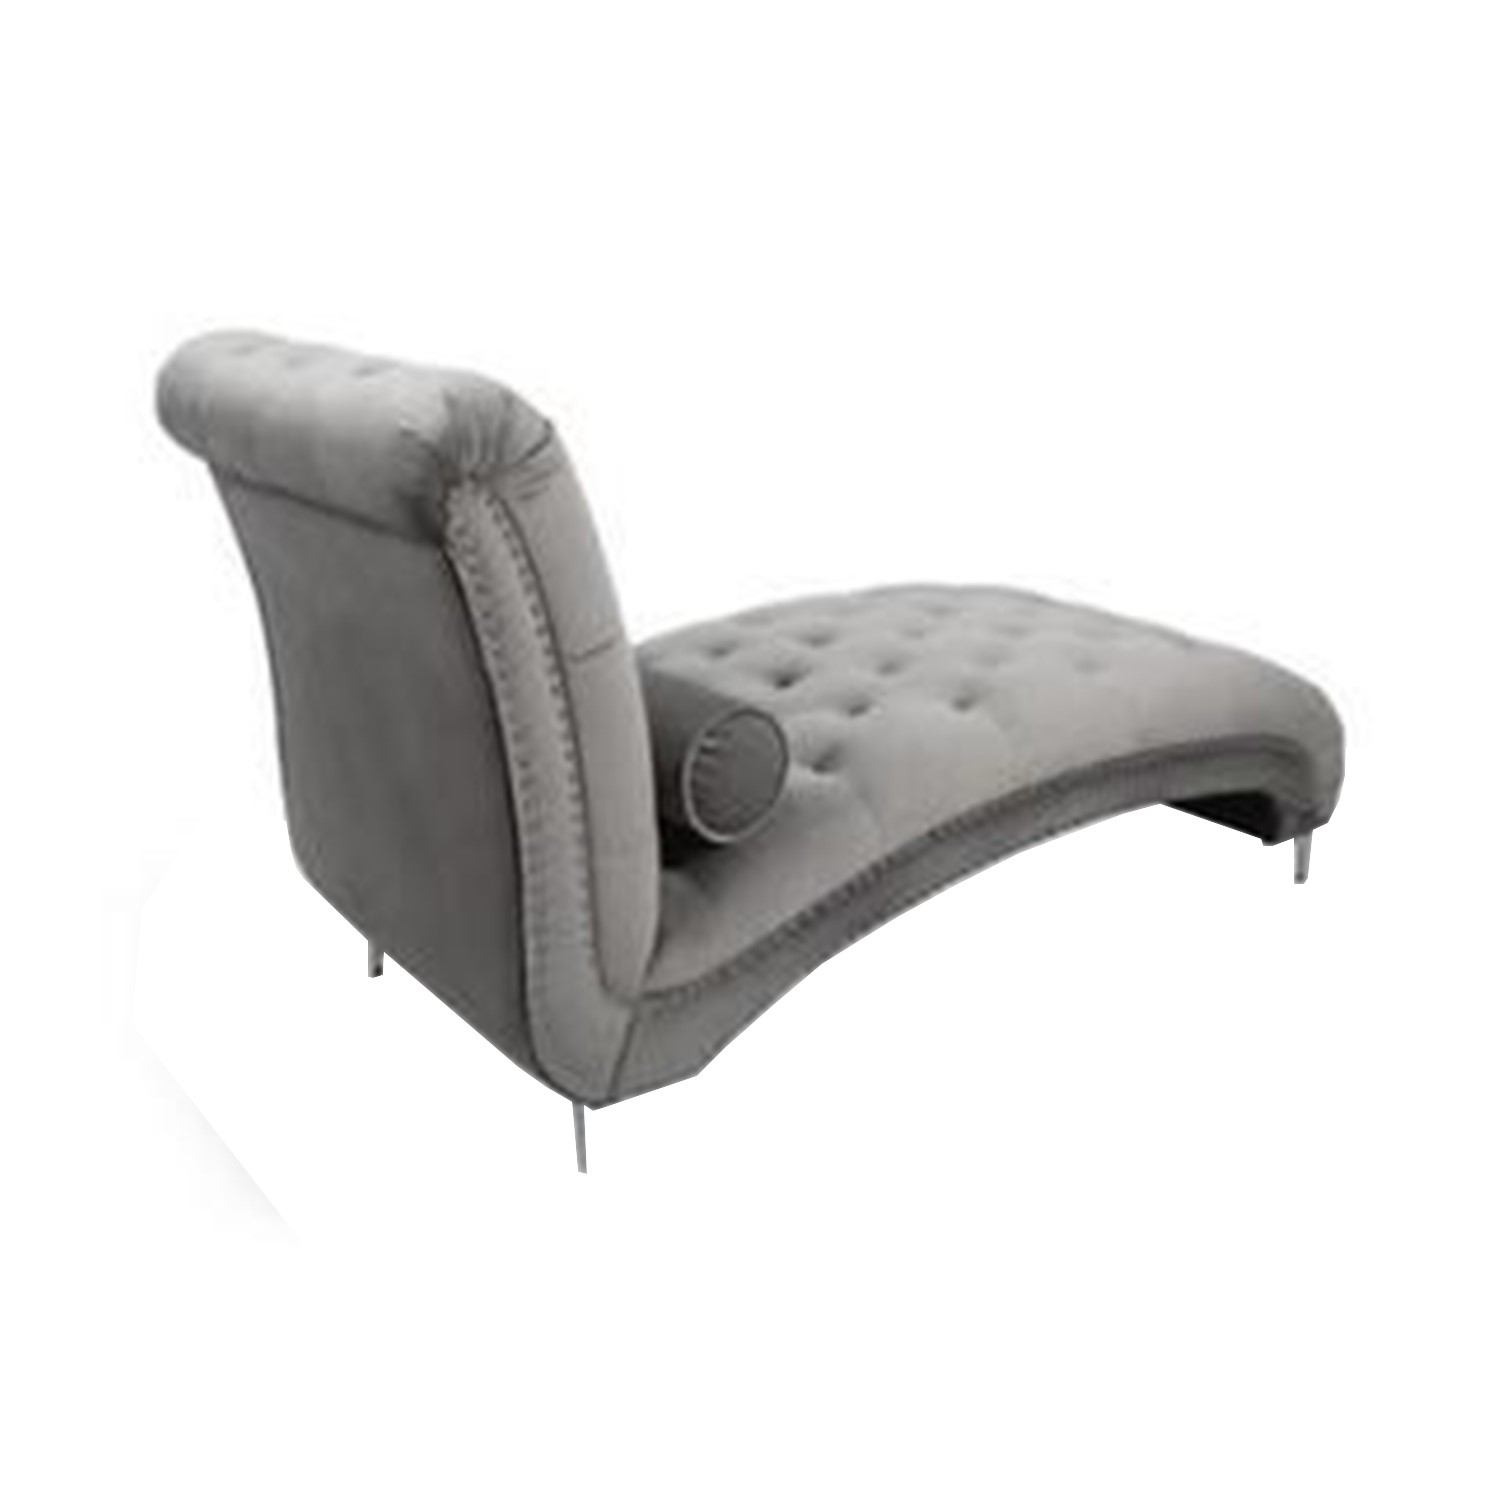 Grey Crushed Velvet Chaise Lounge With Tufted Finish Furniture123